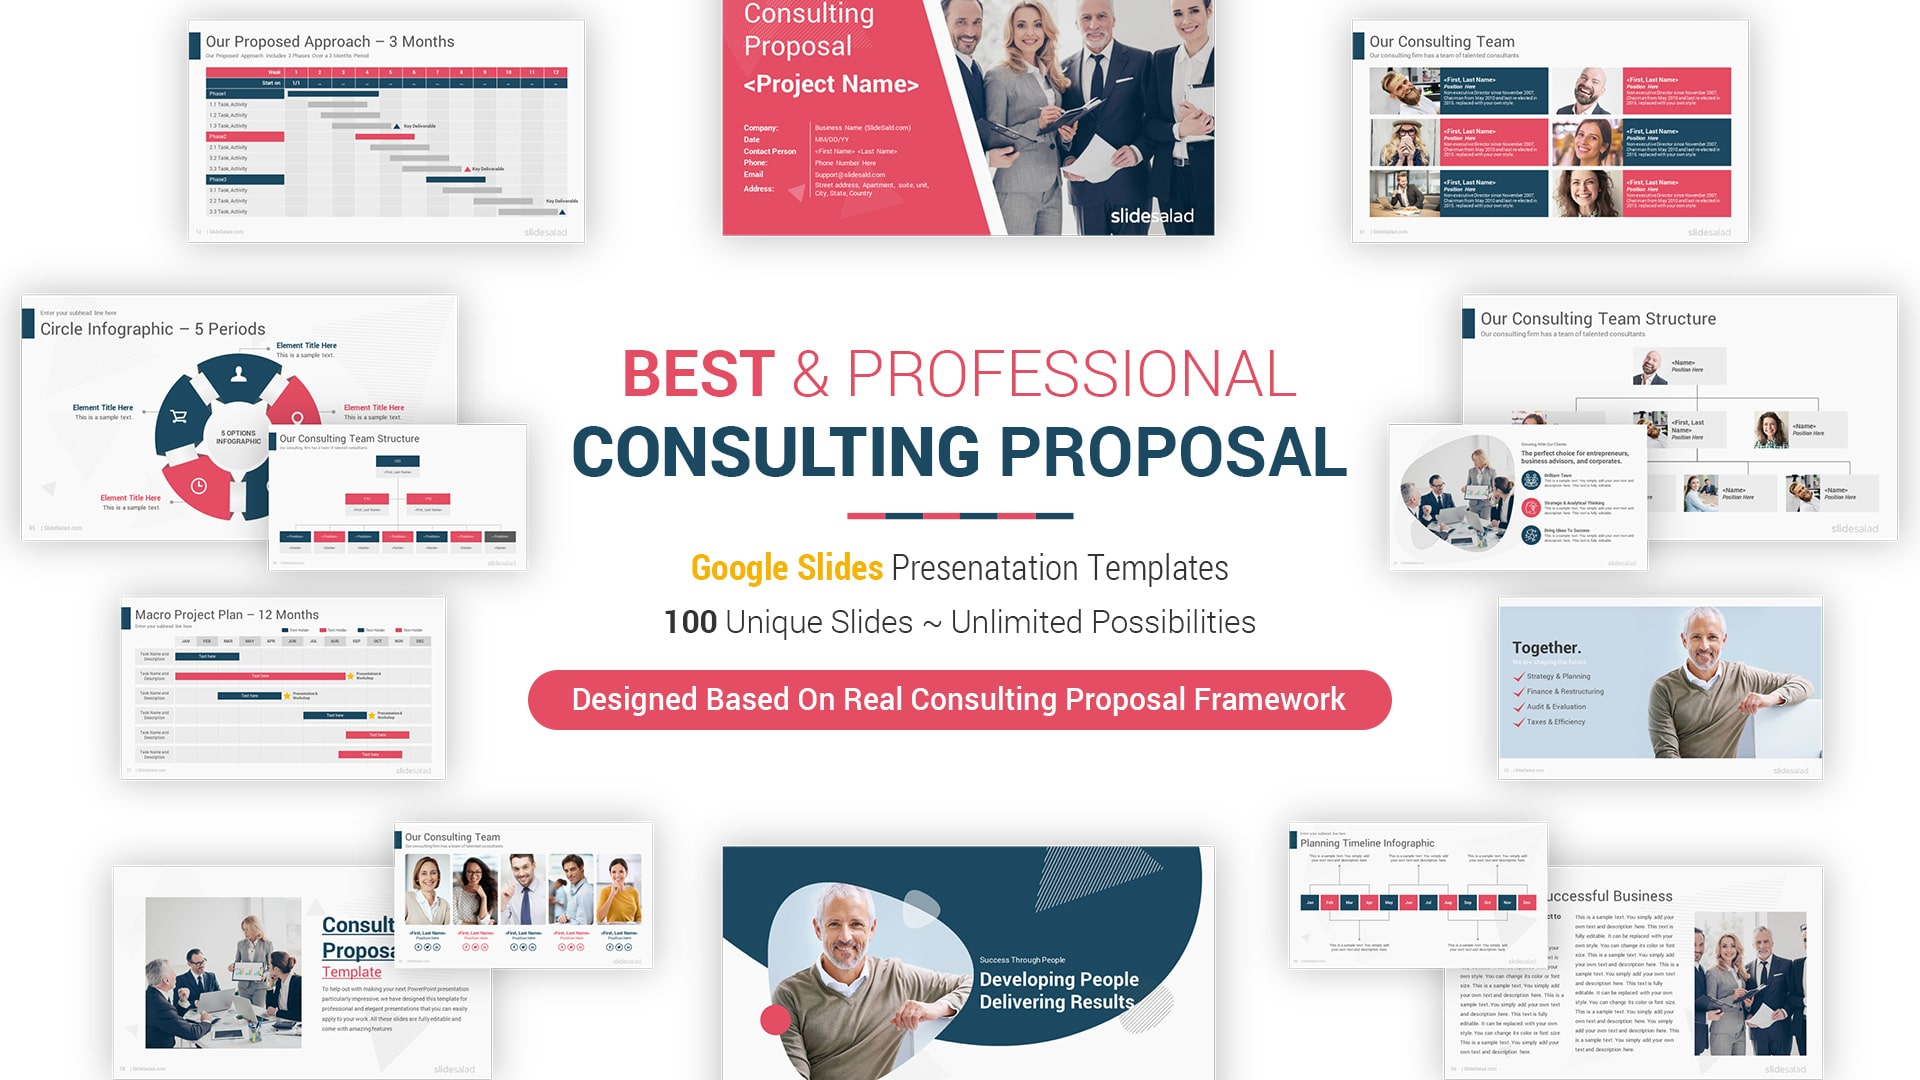 Best Consulting Proposal Google Slides Template - Business Proposal Google Slides Template